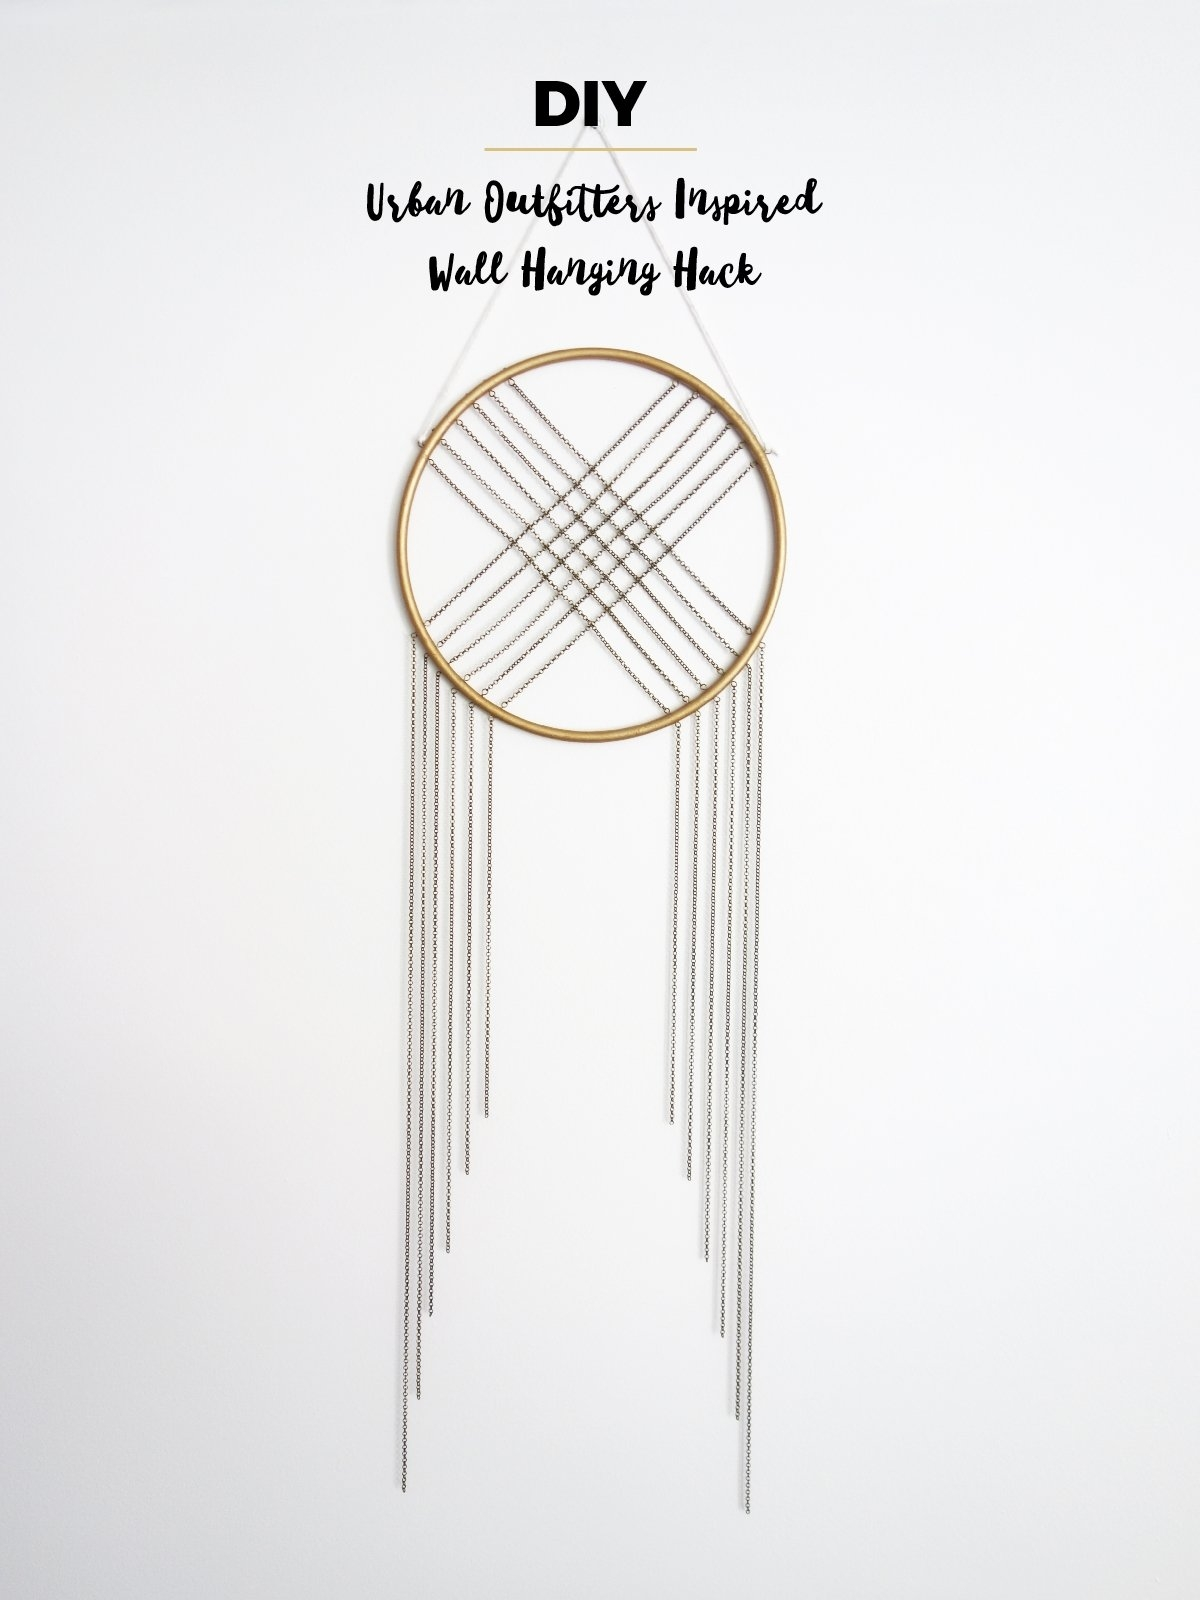 Diy – Urban Outfitters Inspired Wall Hanging Hack | Adorablest Calendar 2019 Urban Outfitters